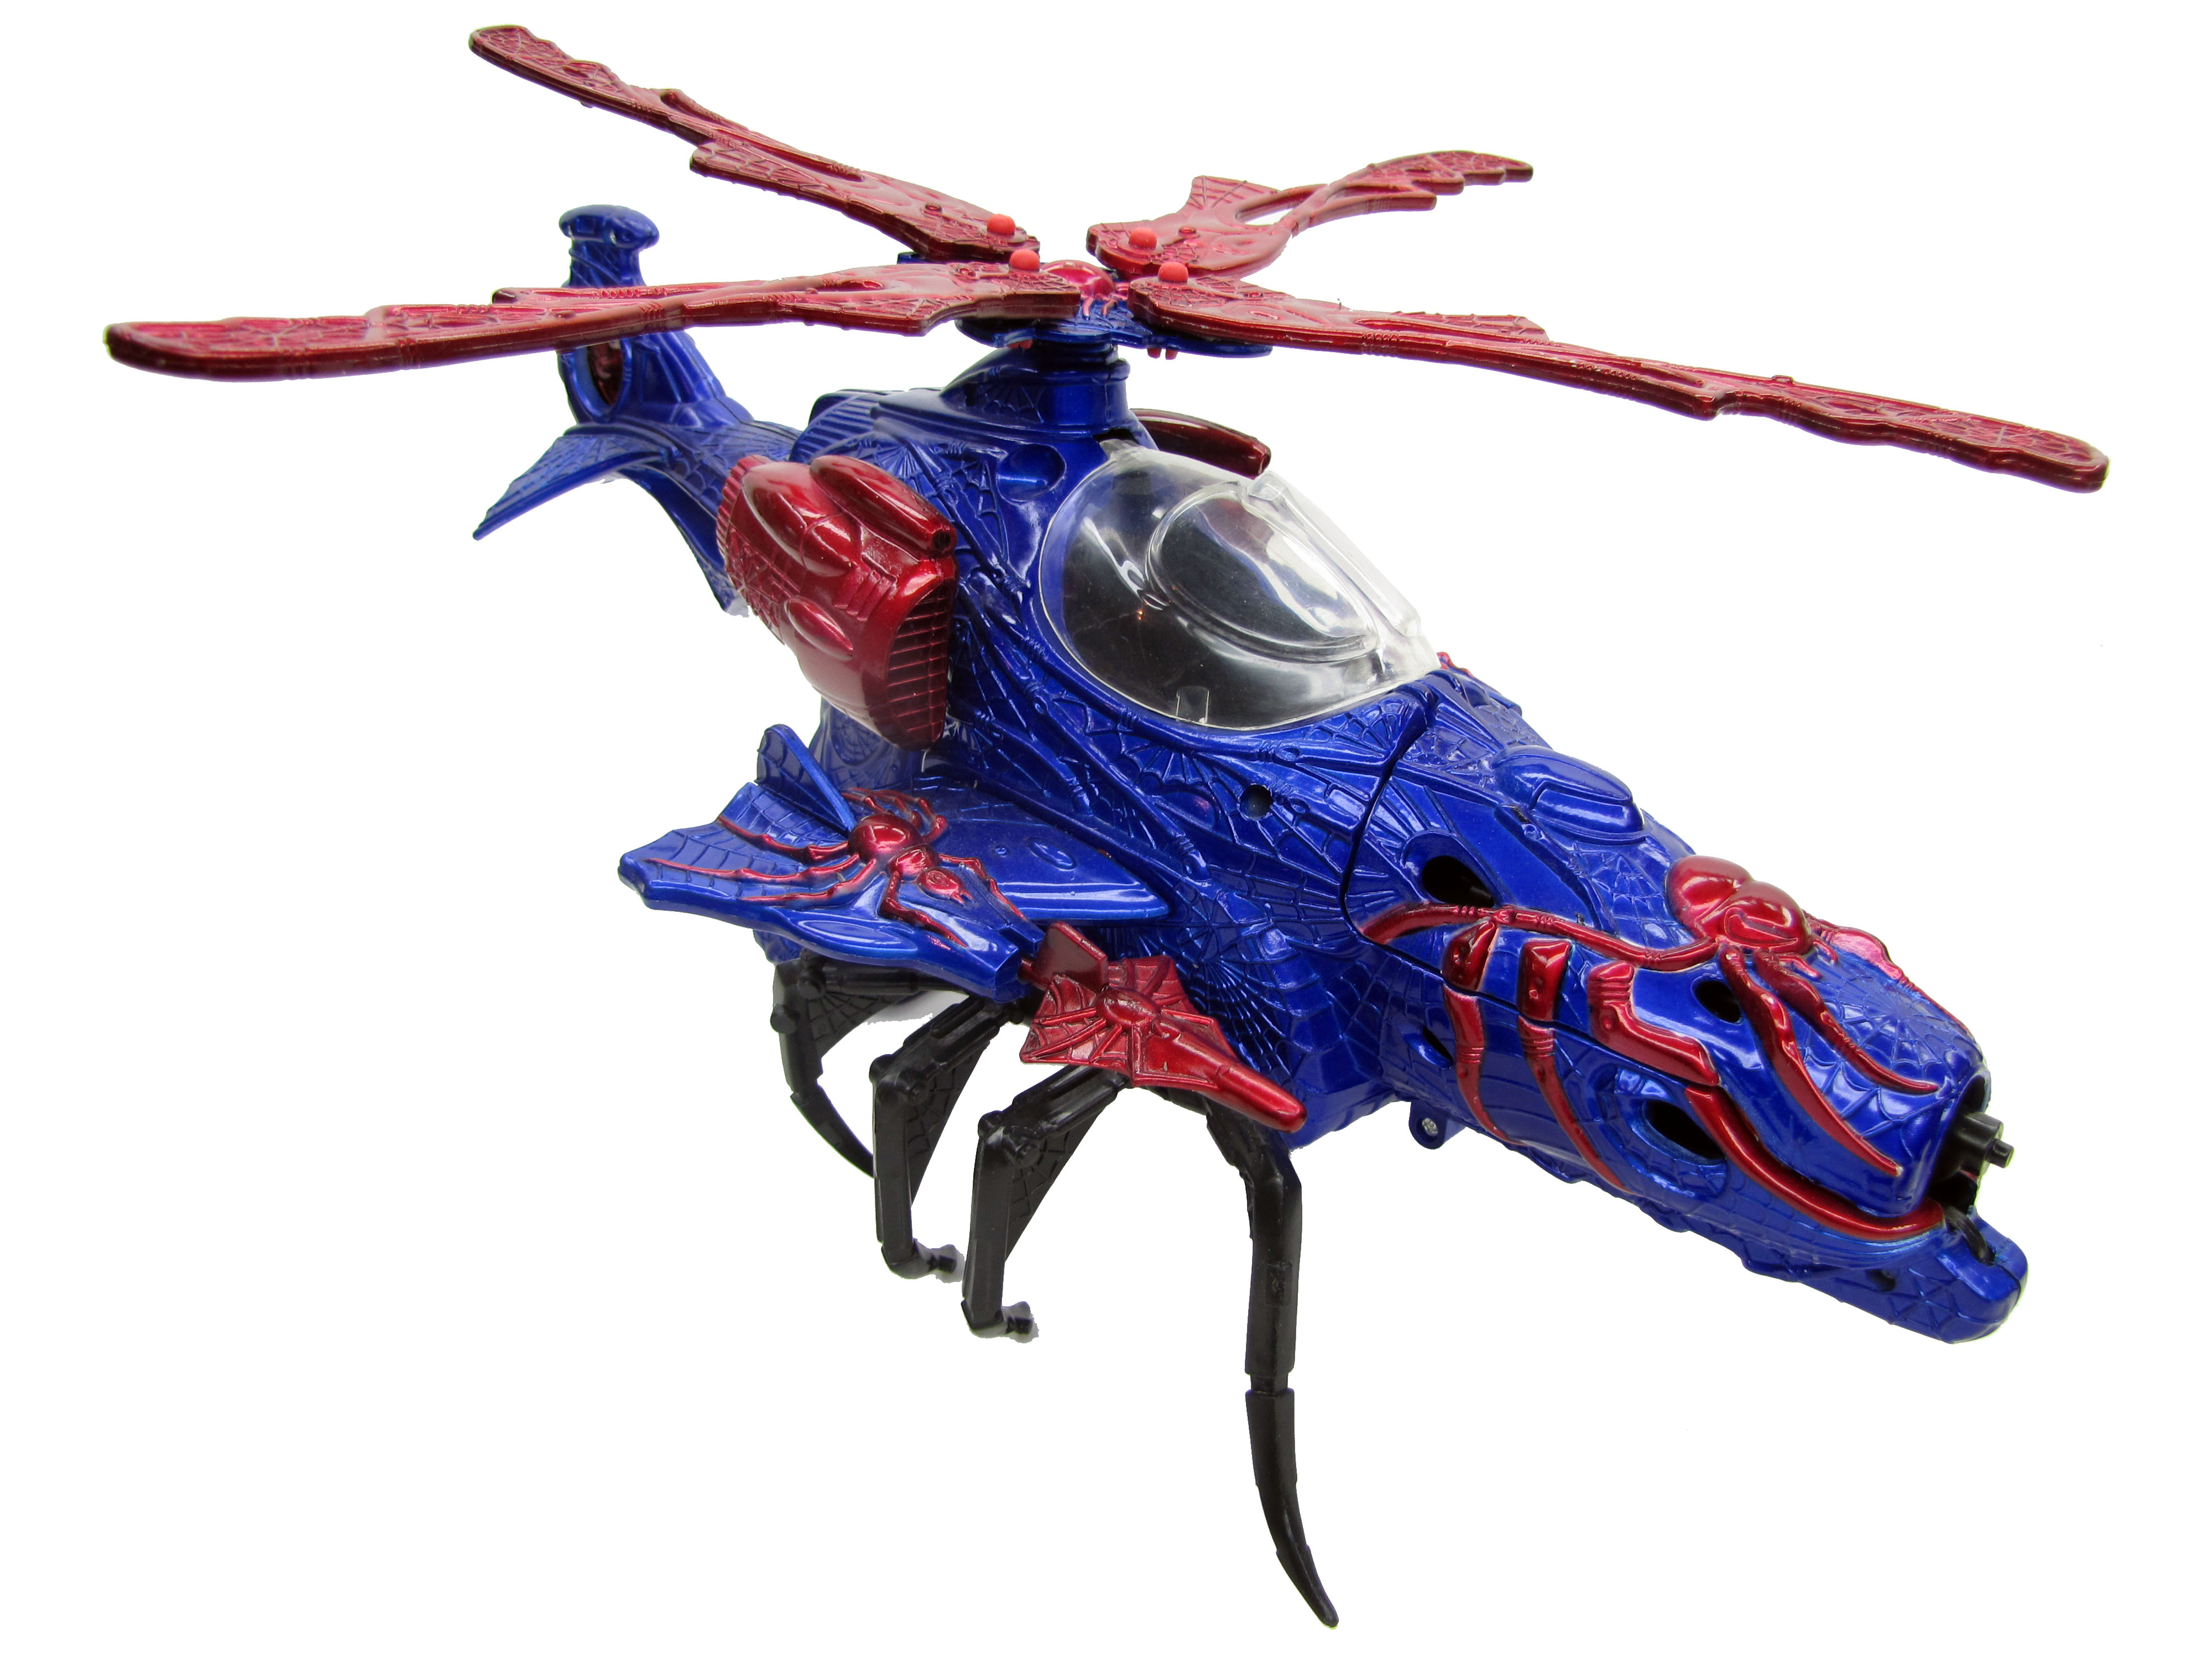 Spider-Man Classics Spider-Man Web Copter Complete